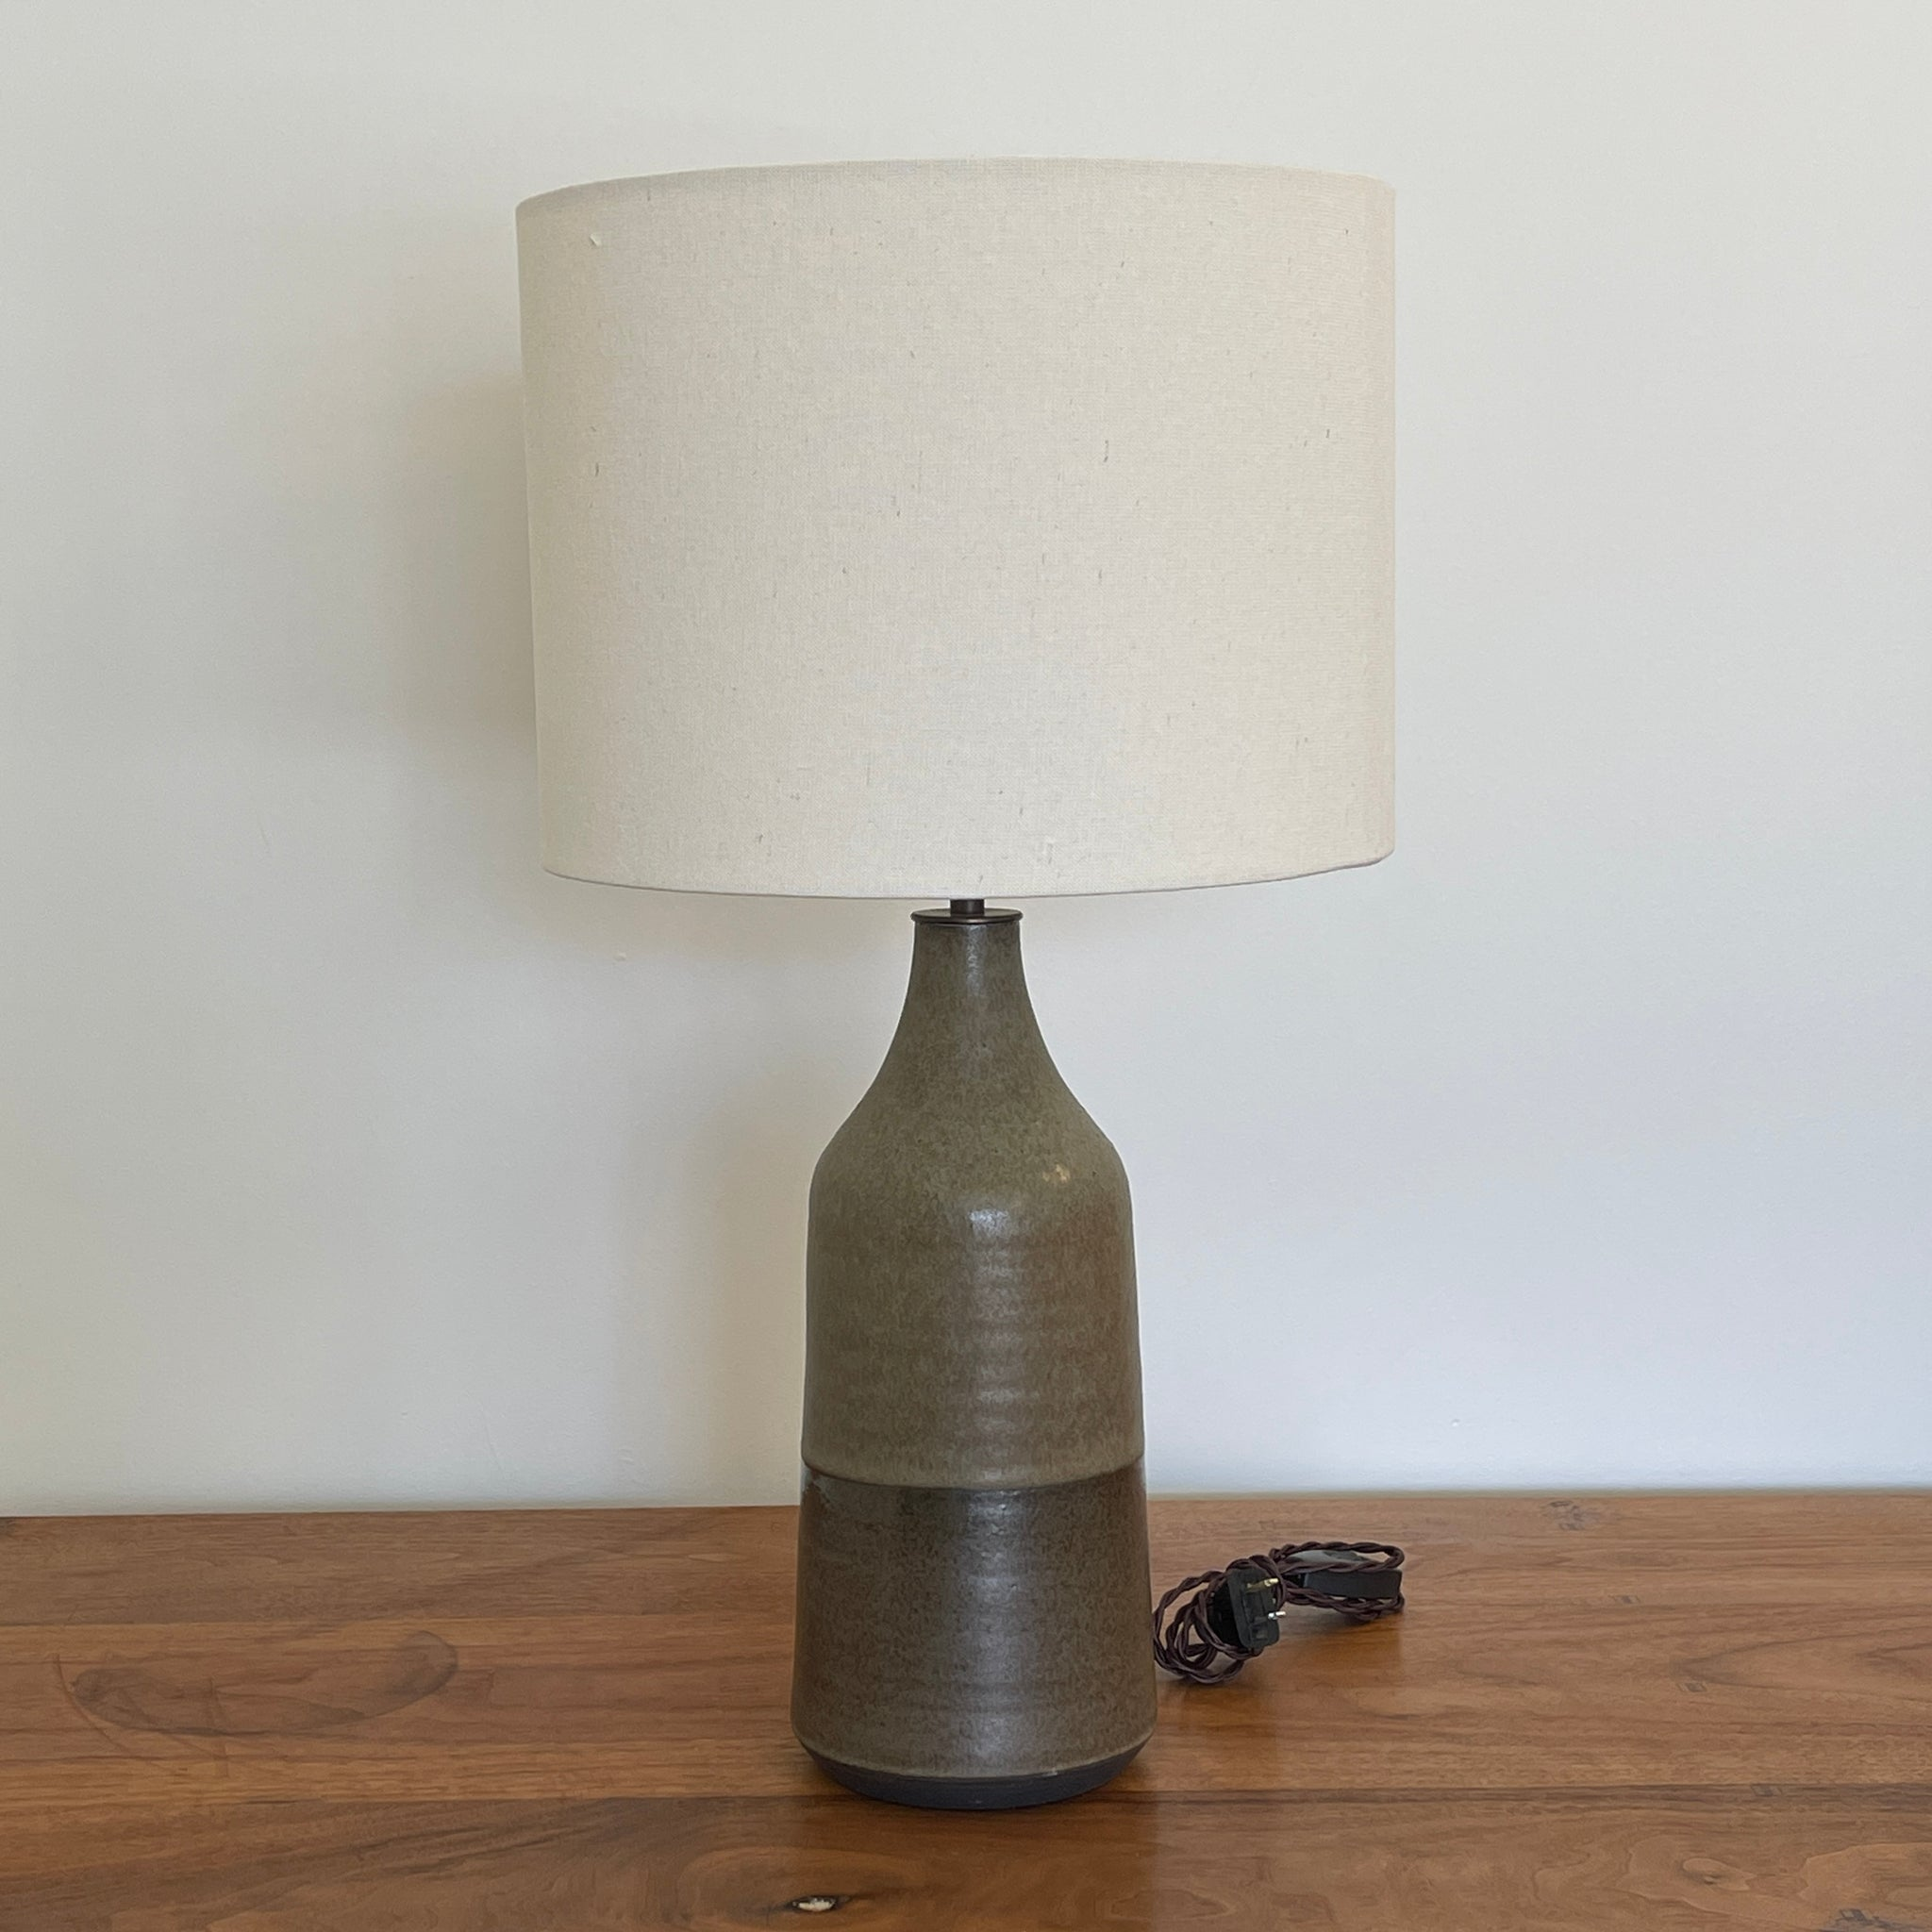 Large Bottle Lamp in Tortoise Shell